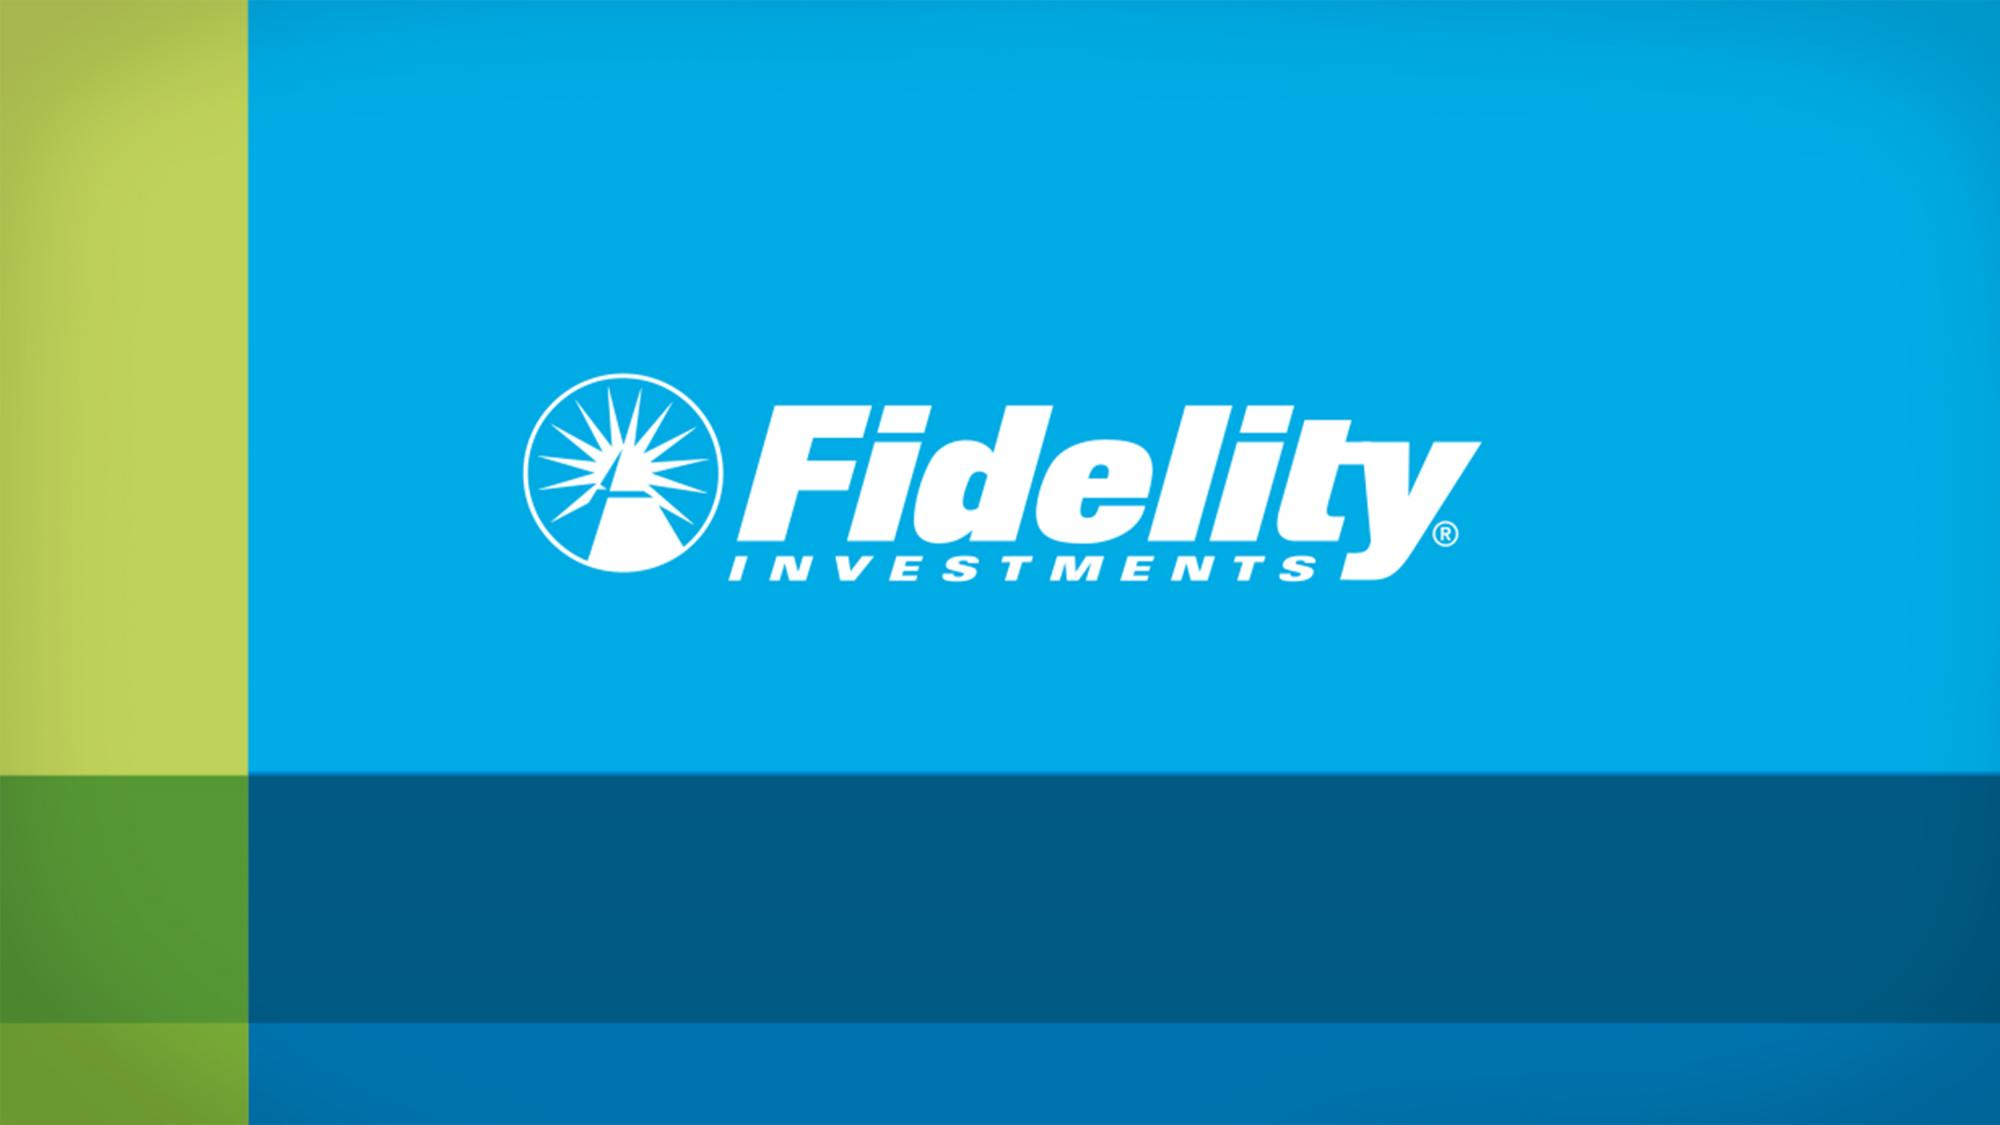 Fidelity investments mint - Fidelity family office services ...